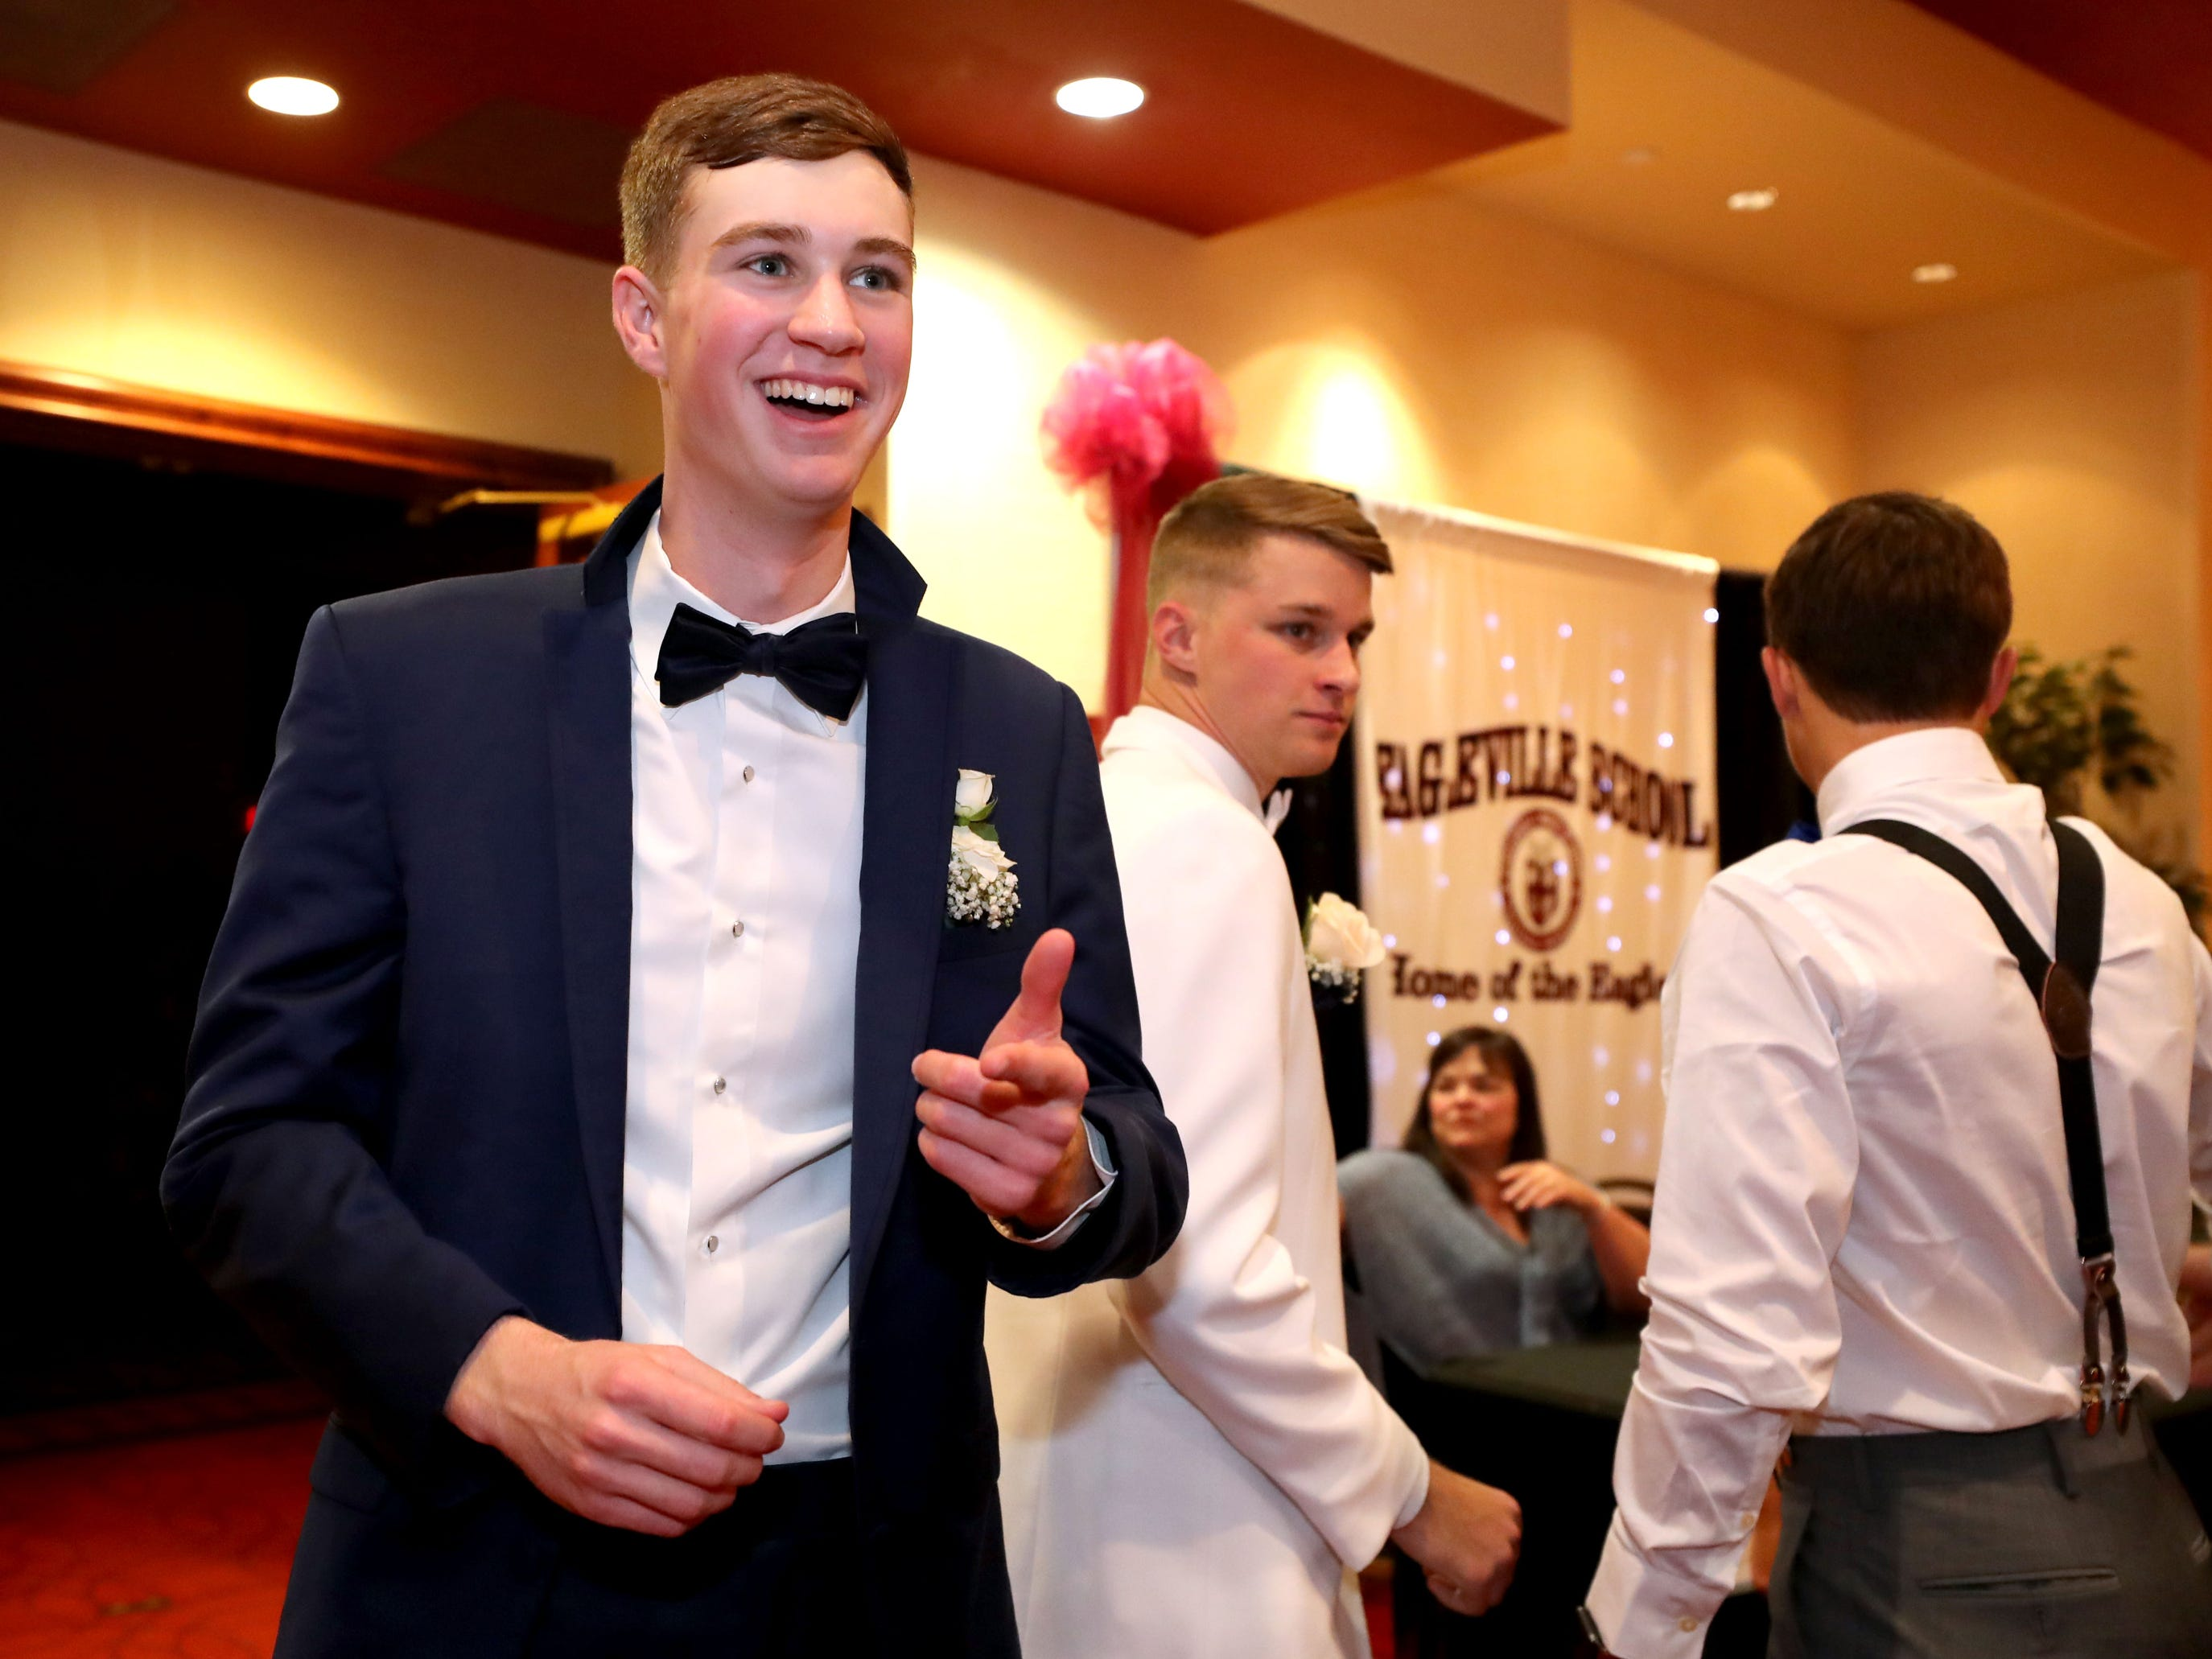 Ivie Burns III greats his friends at Eagleville's Prom held at Embassy Suites, in Murfreesboro on Thursday April 5, 2019.